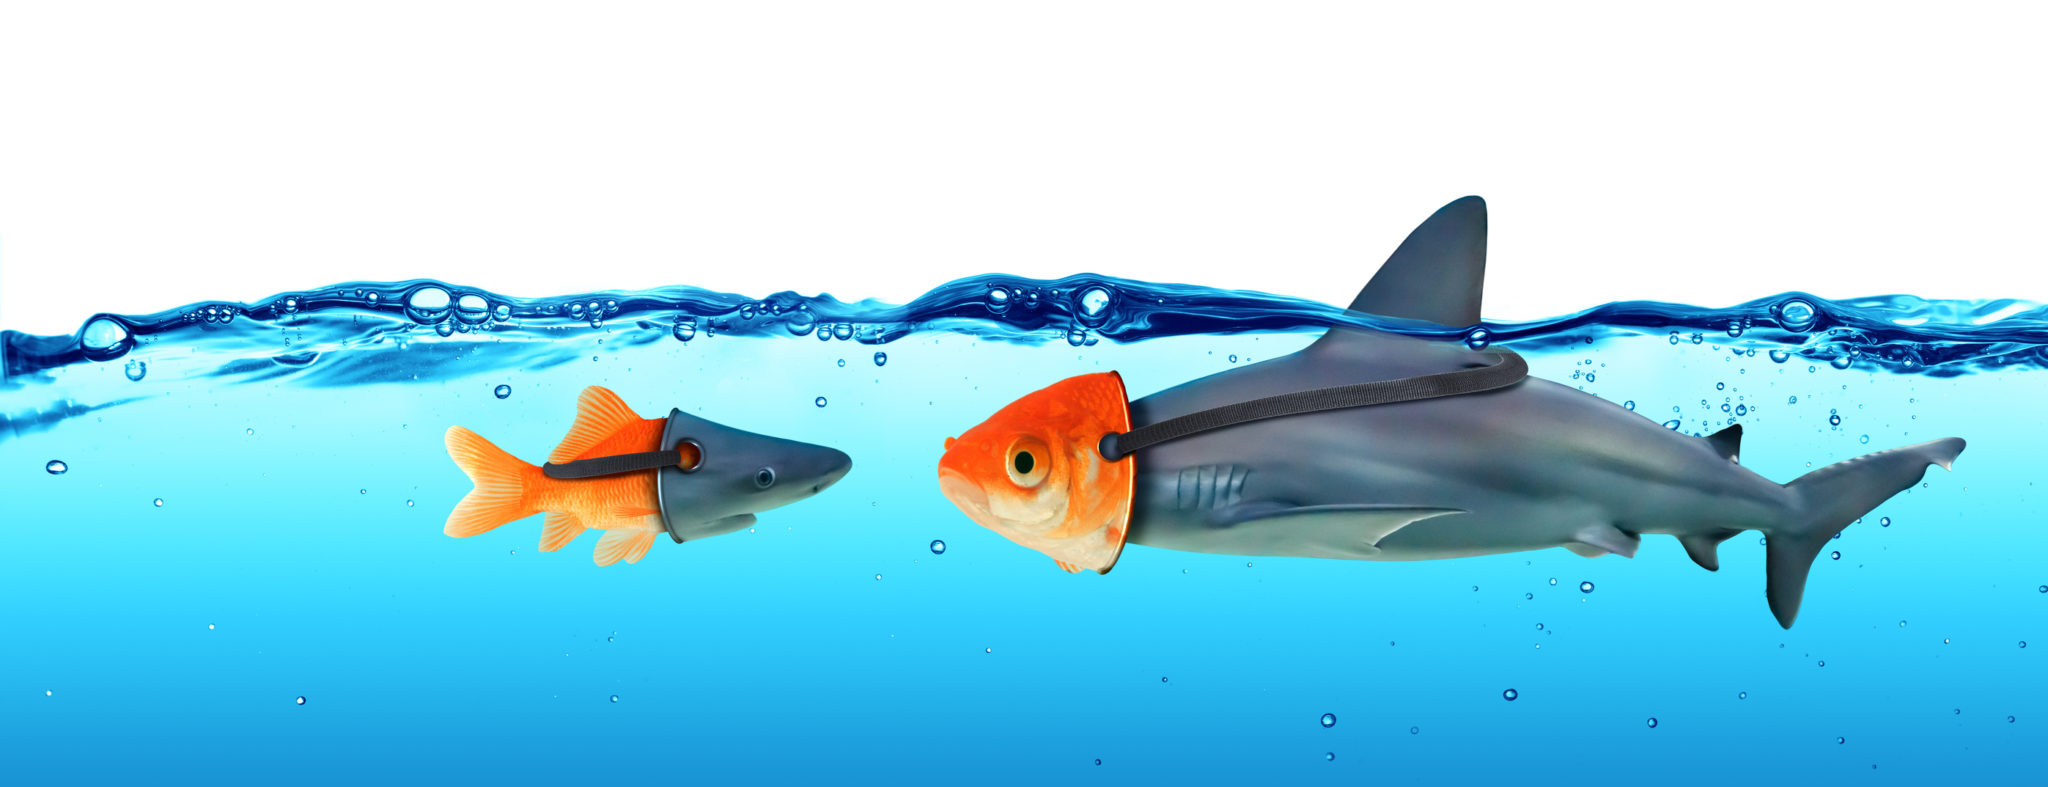 Deception Concept - Disguise Between Shark And Goldfish